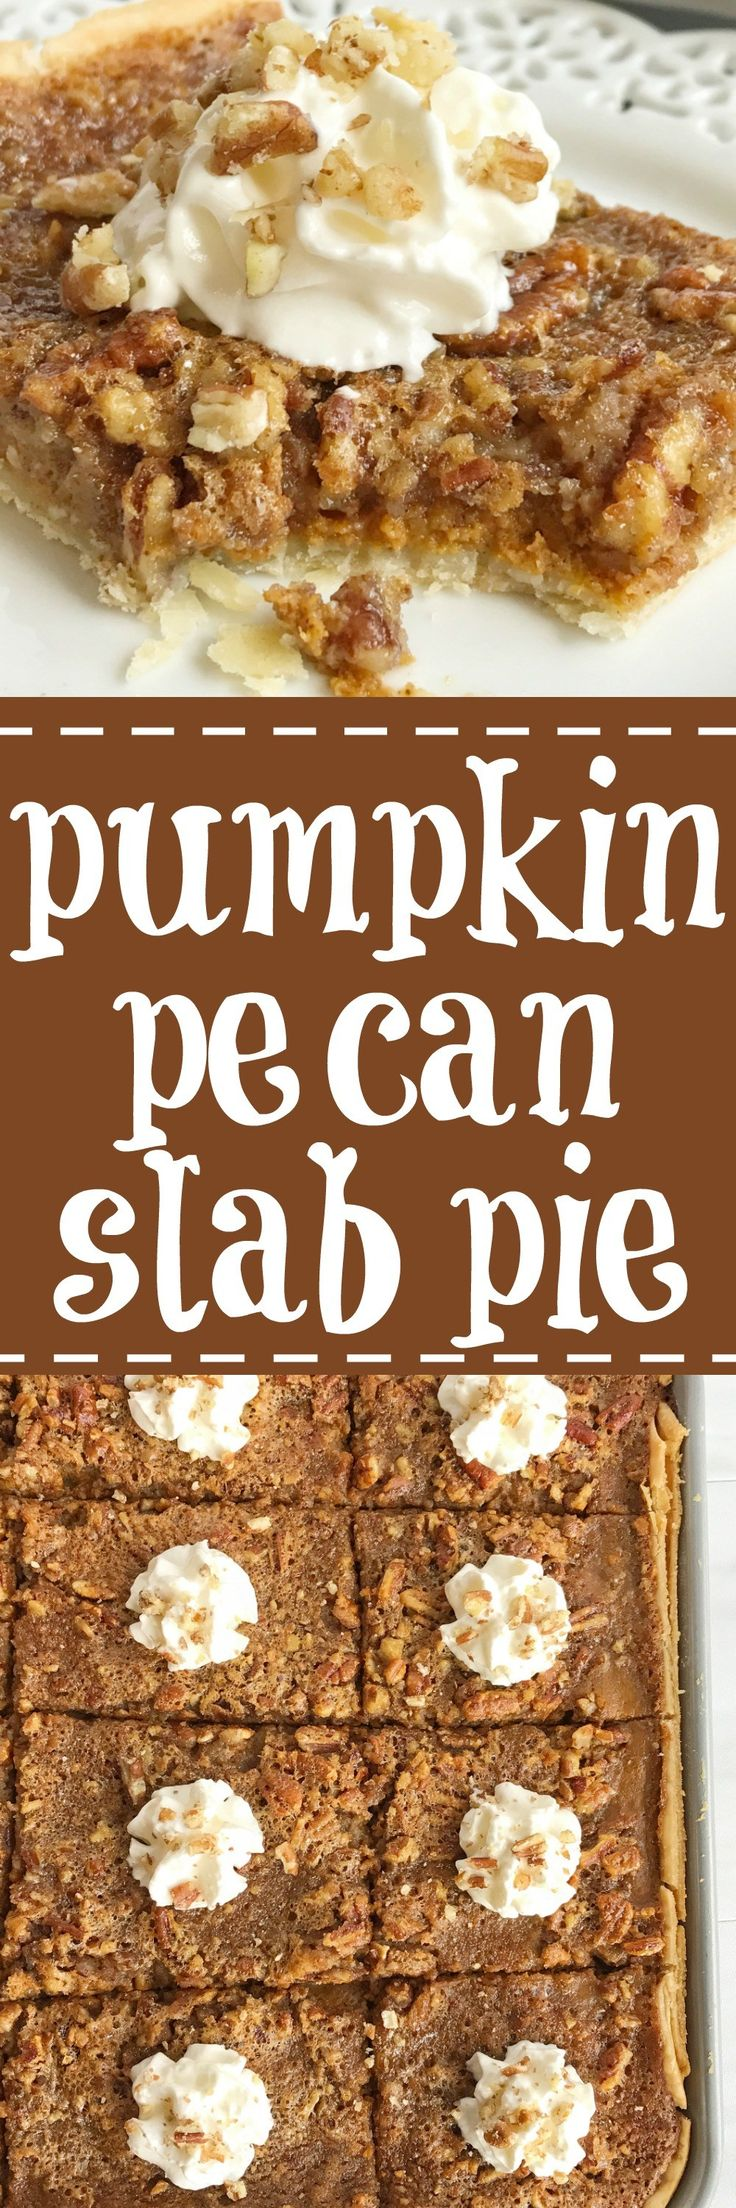 Pumpkin pecan slab pie combines the best desserts of Fall. An easy pie crust topped with a creamy pumpkin pie and finished off with pecan pie. It also makes enough for a crowd so it's perfect for all those Holiday gatherings, and it's pretty easy recipe to make too | togetherasfamily.com